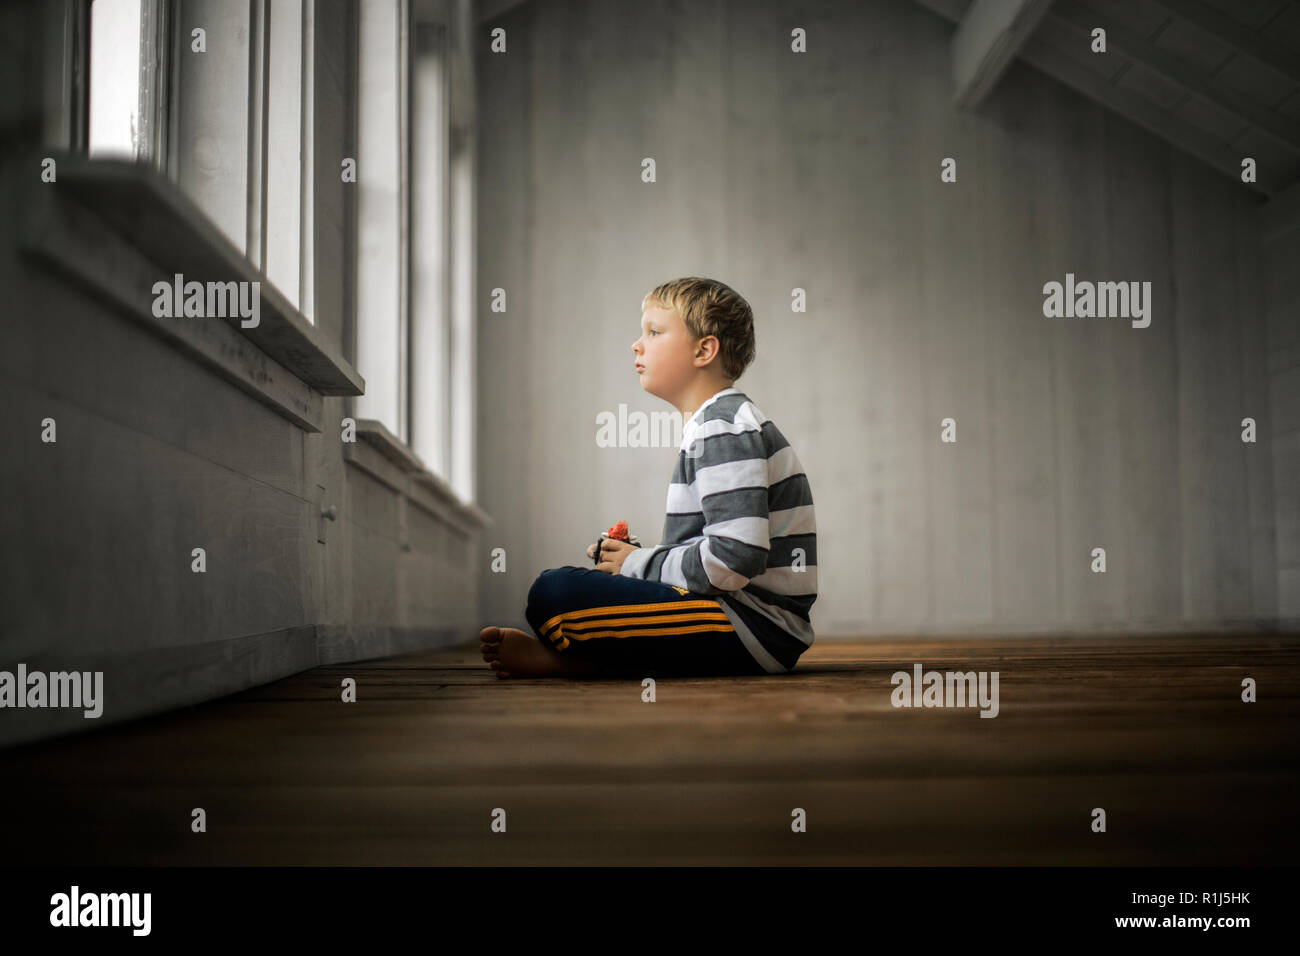 Young boy looking thoughtfully out a window. - Stock Image